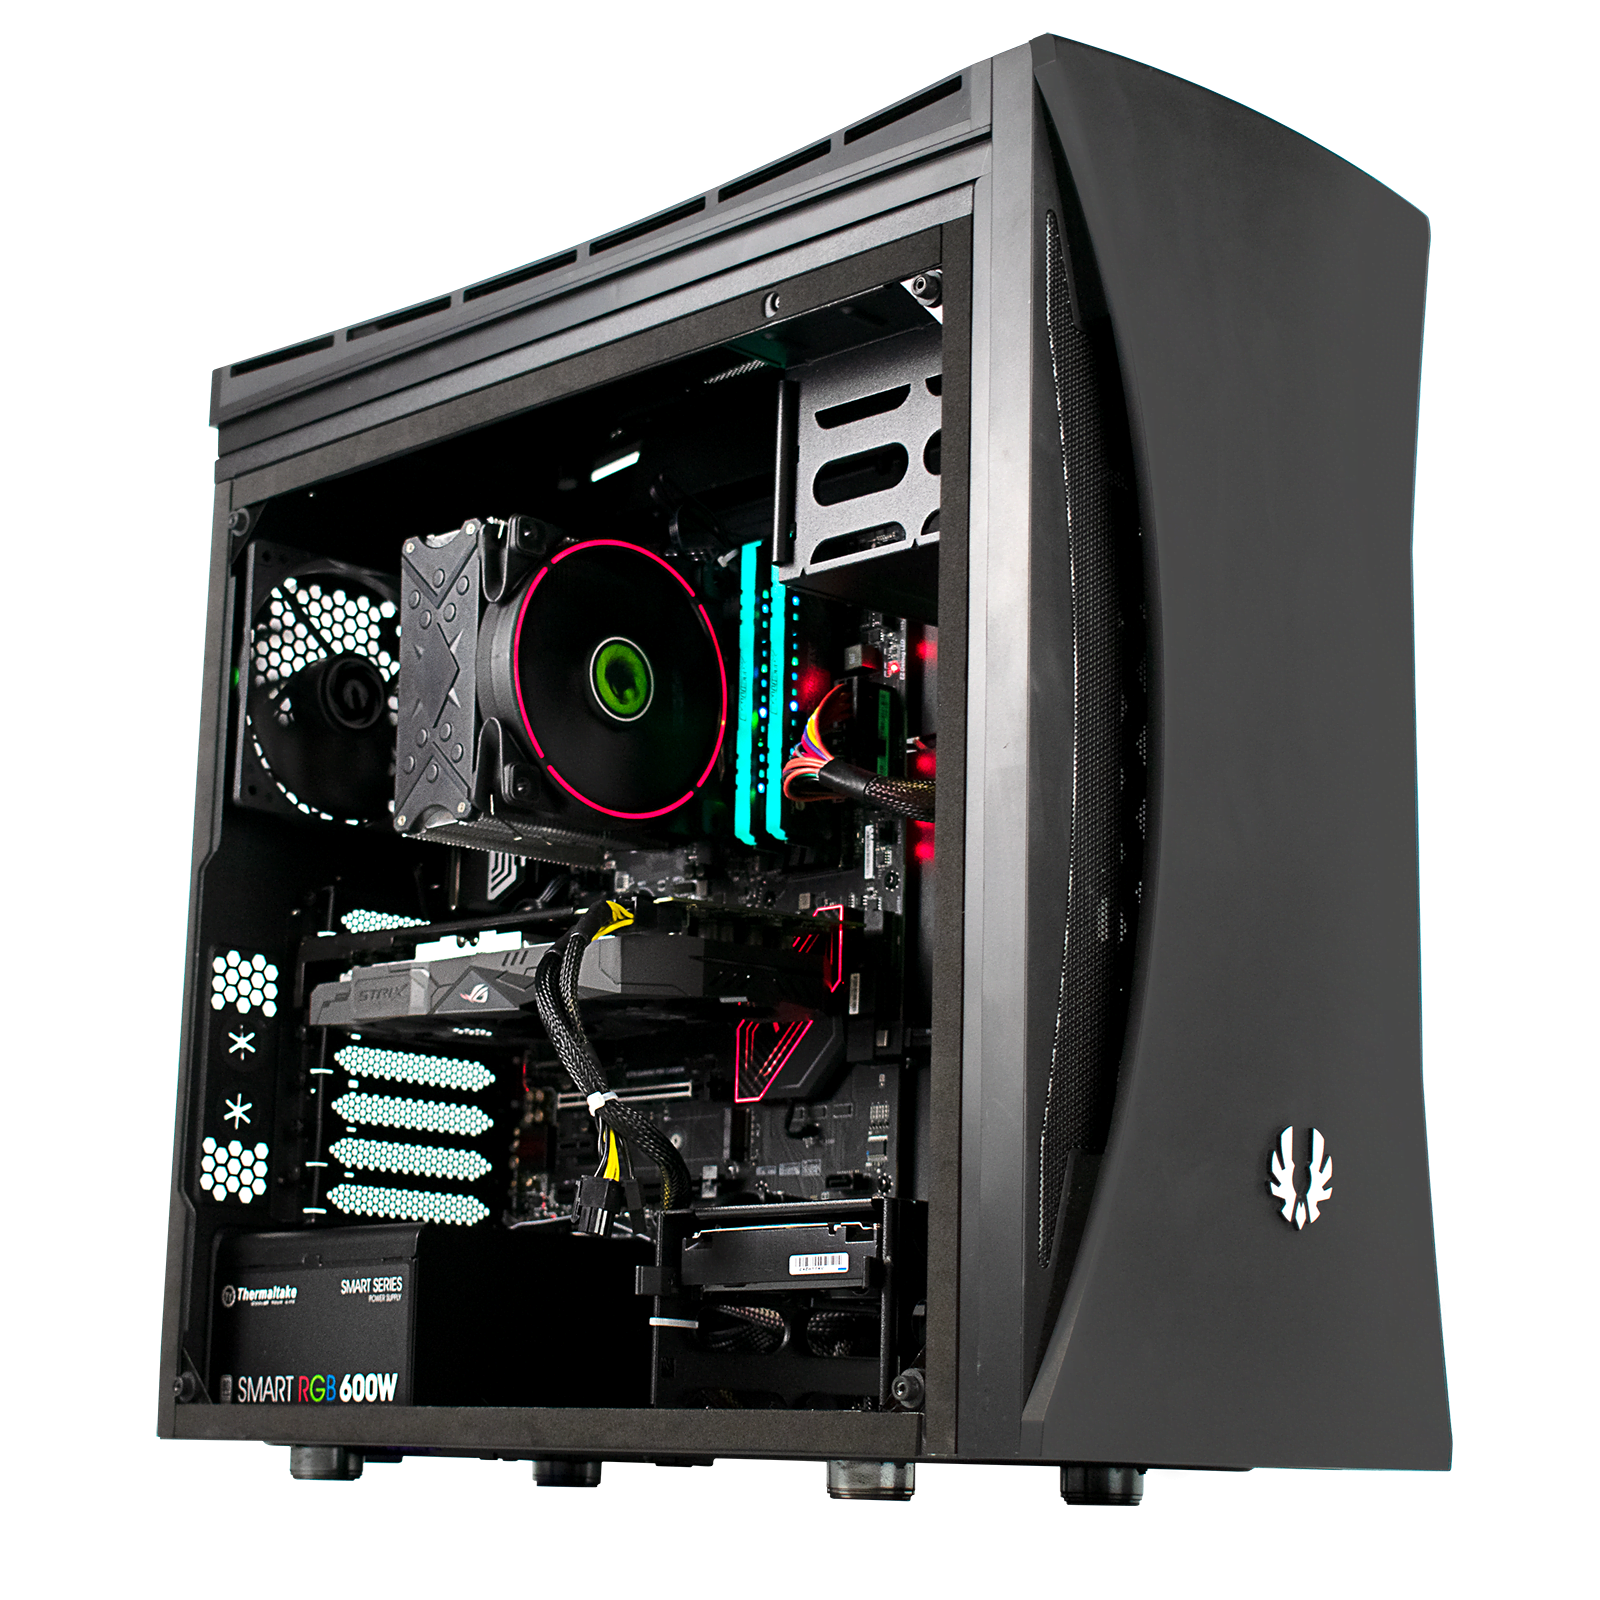 PC Gamer Cybertek VULTURE Processeur AMD Ryzen 5 1600 - Corsair 16Go DDR4 - Asus Strix RX570-O4G - Kingston SSD 240Go